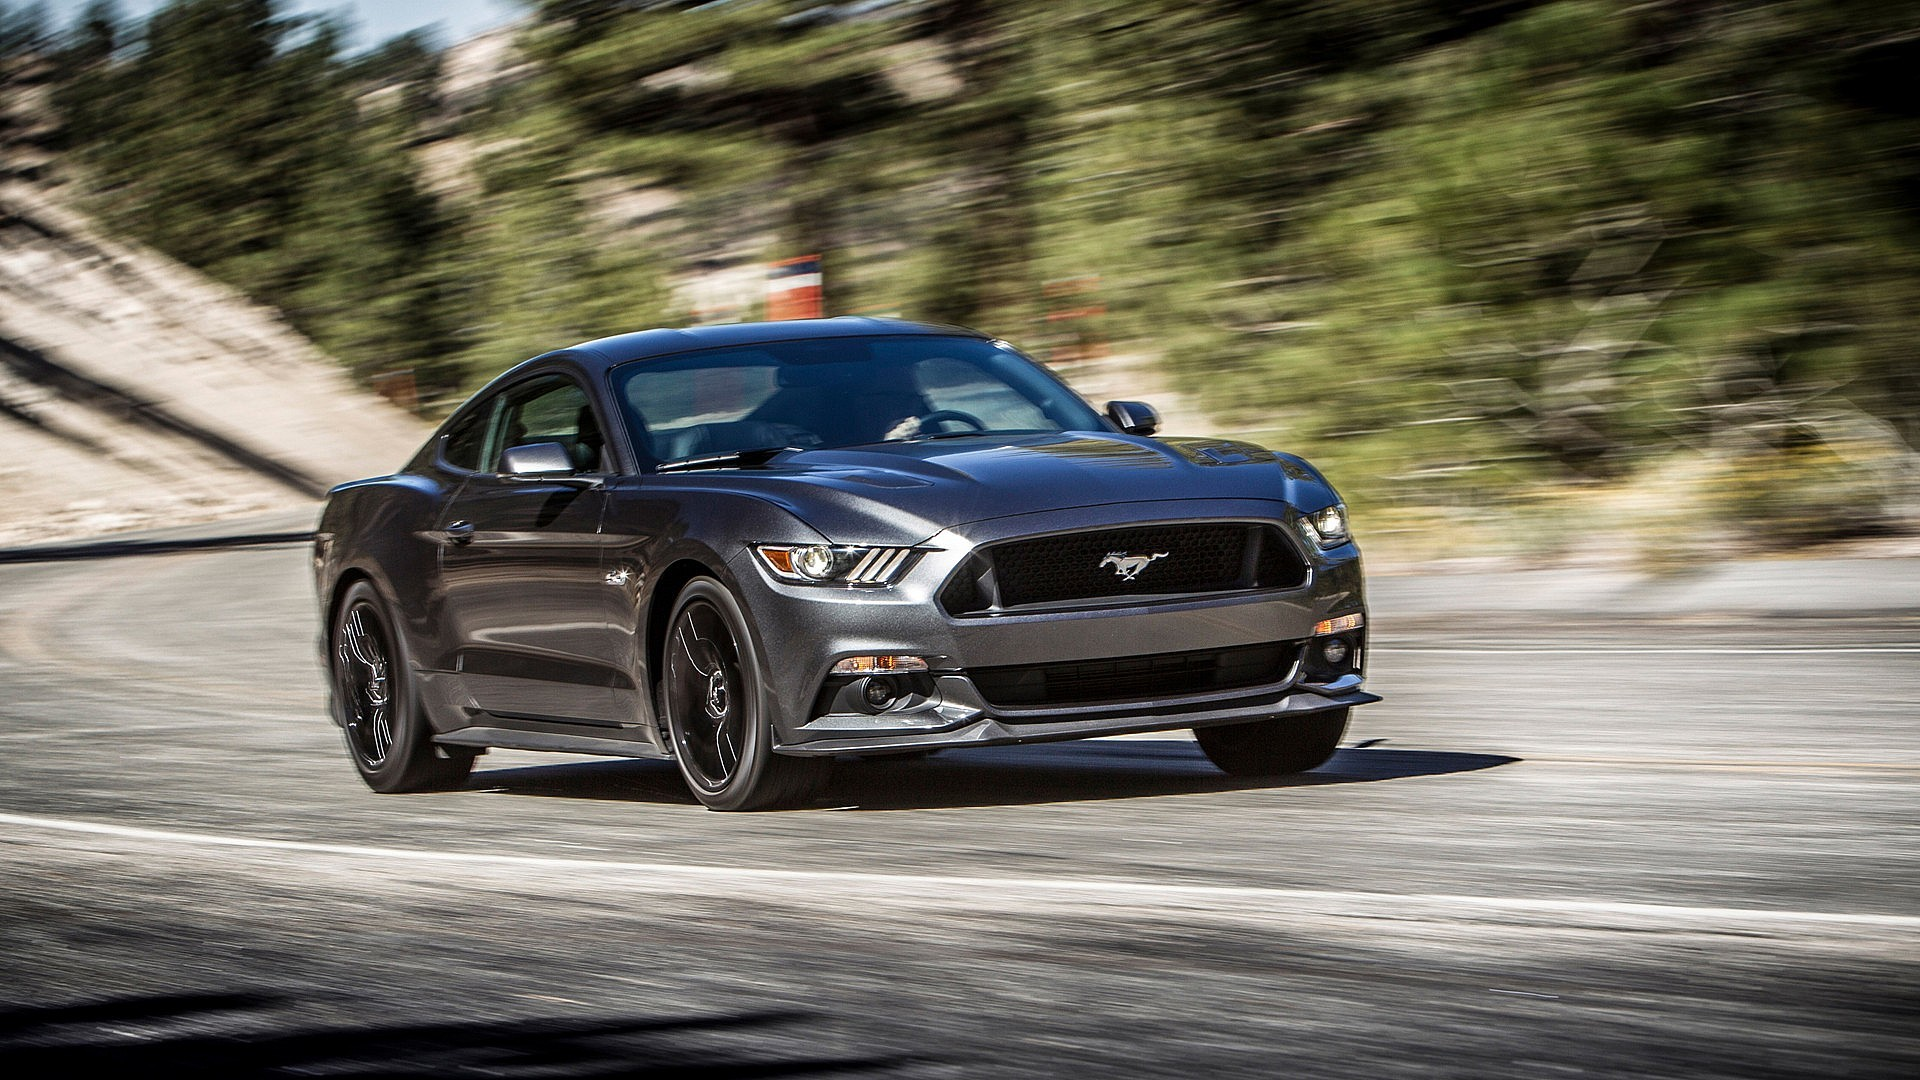 Ford Mustang Hennessey >> Ford Mustang Gt Wallpaper (75+ images)